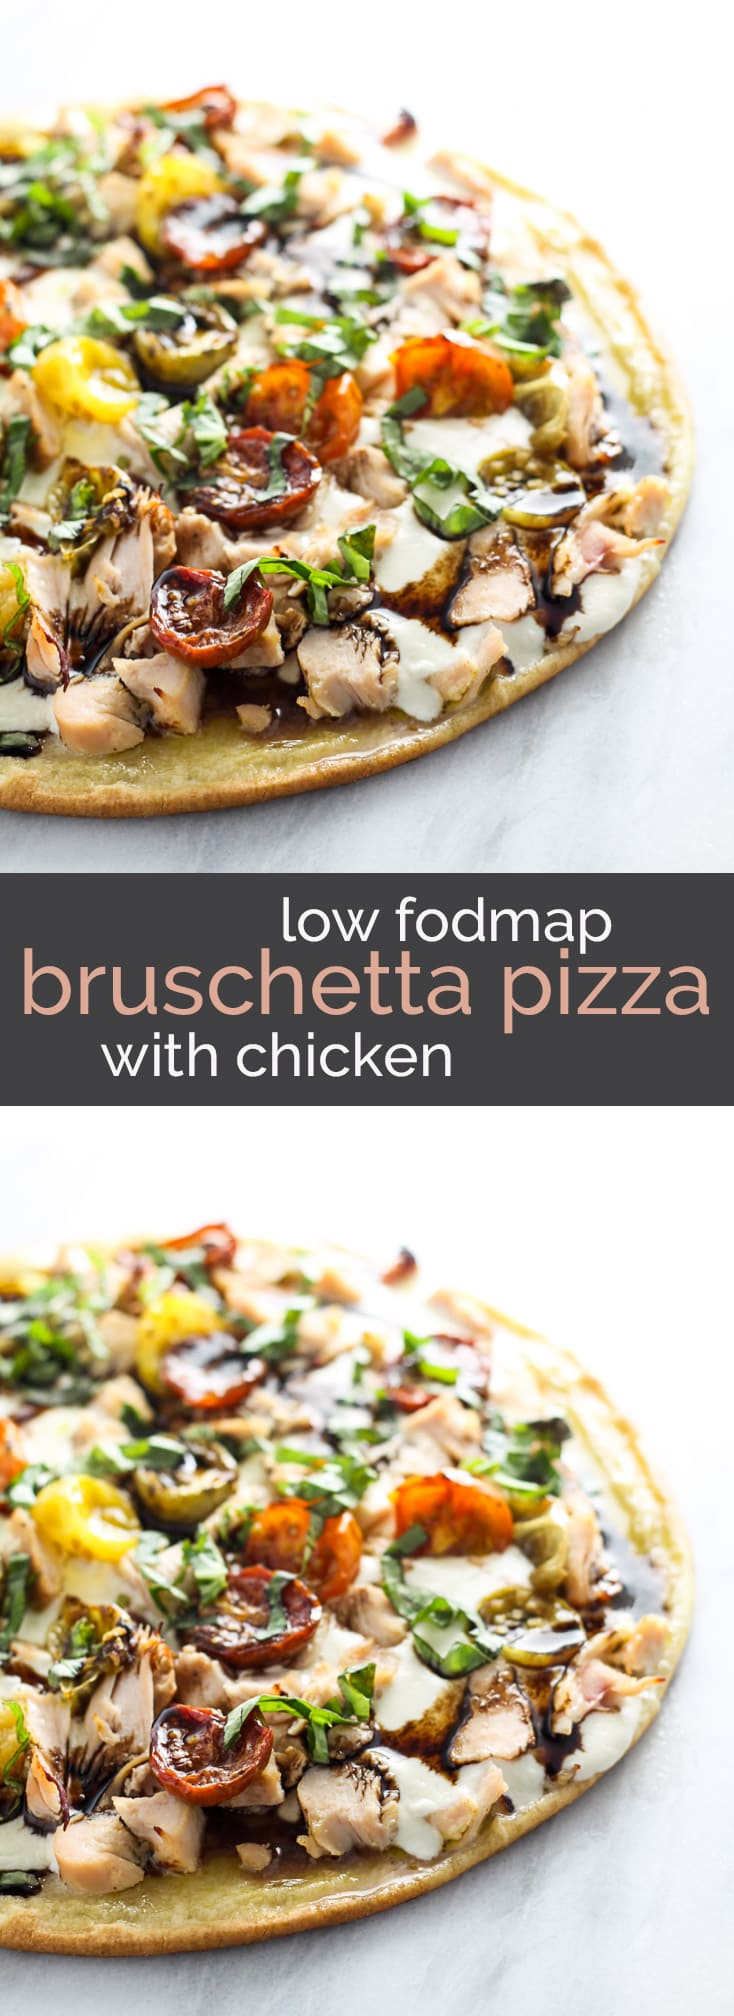 Transforming the classic appetizer into a mealtime favorite with this Low Fodmap Bruschetta PIzza with Chicken. Gluten free and full of flavor, this will quickly become a family-favorite recipe!